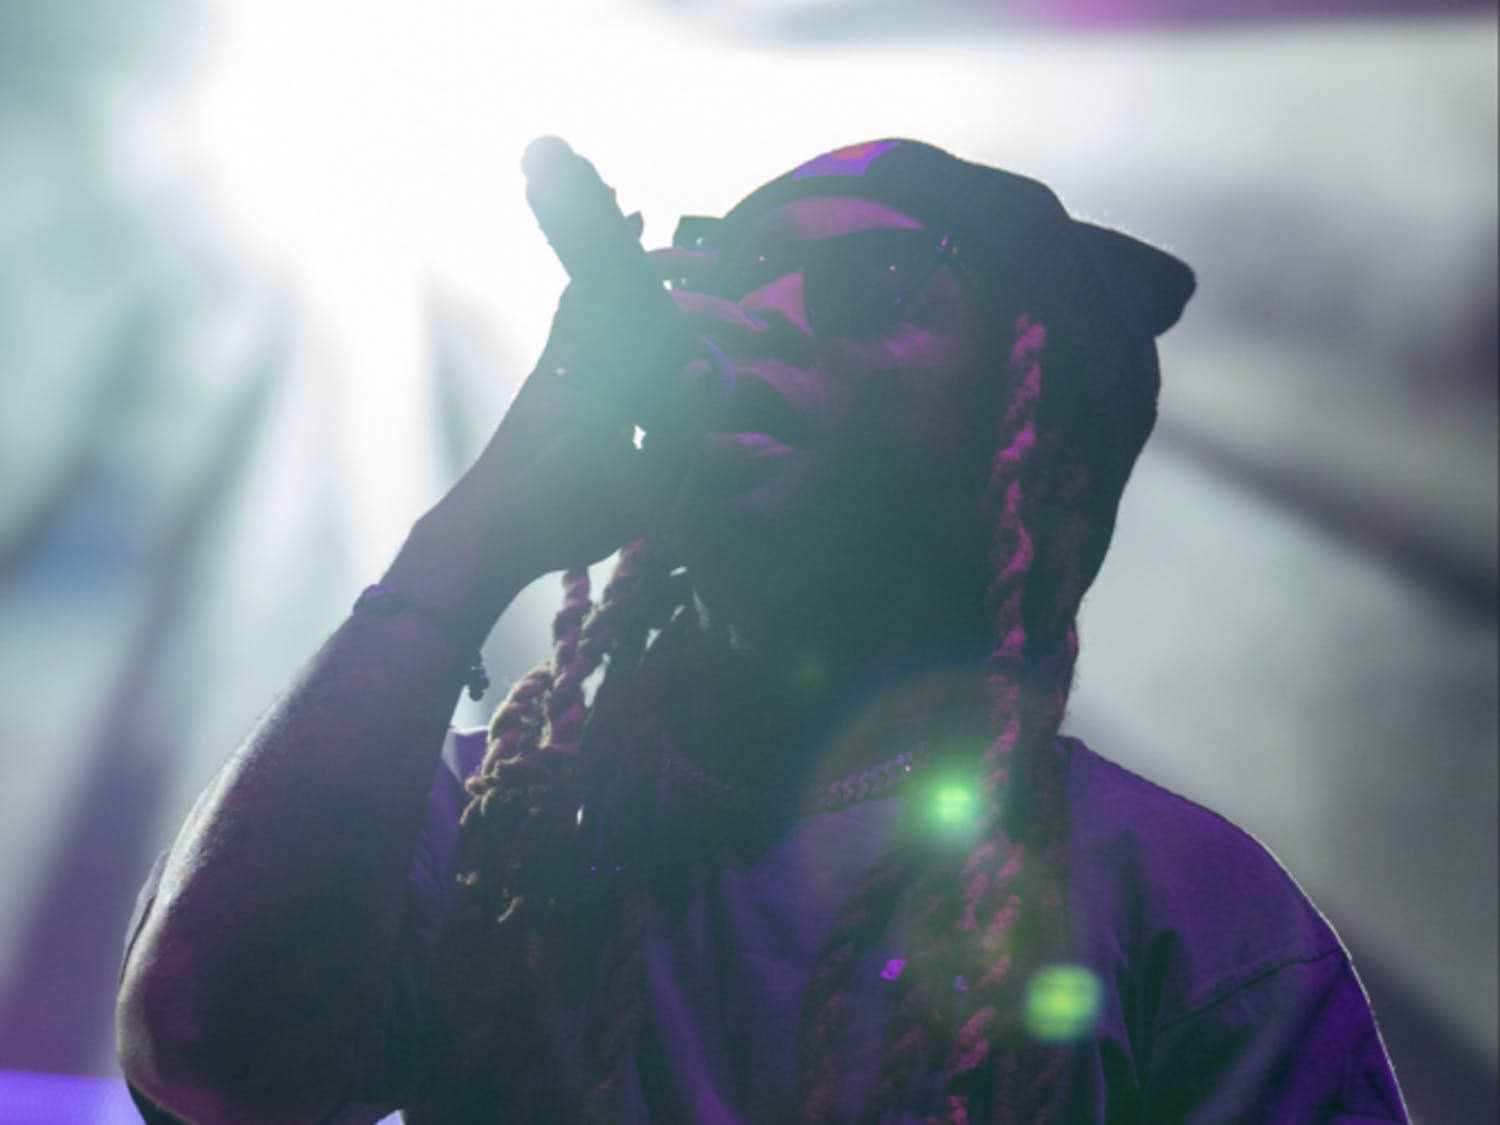 Los Angeles-based rapper Ty Dolla $ign, an artist in Wiz Khalifa's label Taylor Gang Entertainment, puts on a show for students at Gator Growl 2018. The concert, which was held on Flavet Field, capped off UF homecoming celebrations and also featured alternative rock band Walk The Moon. Read the story here.